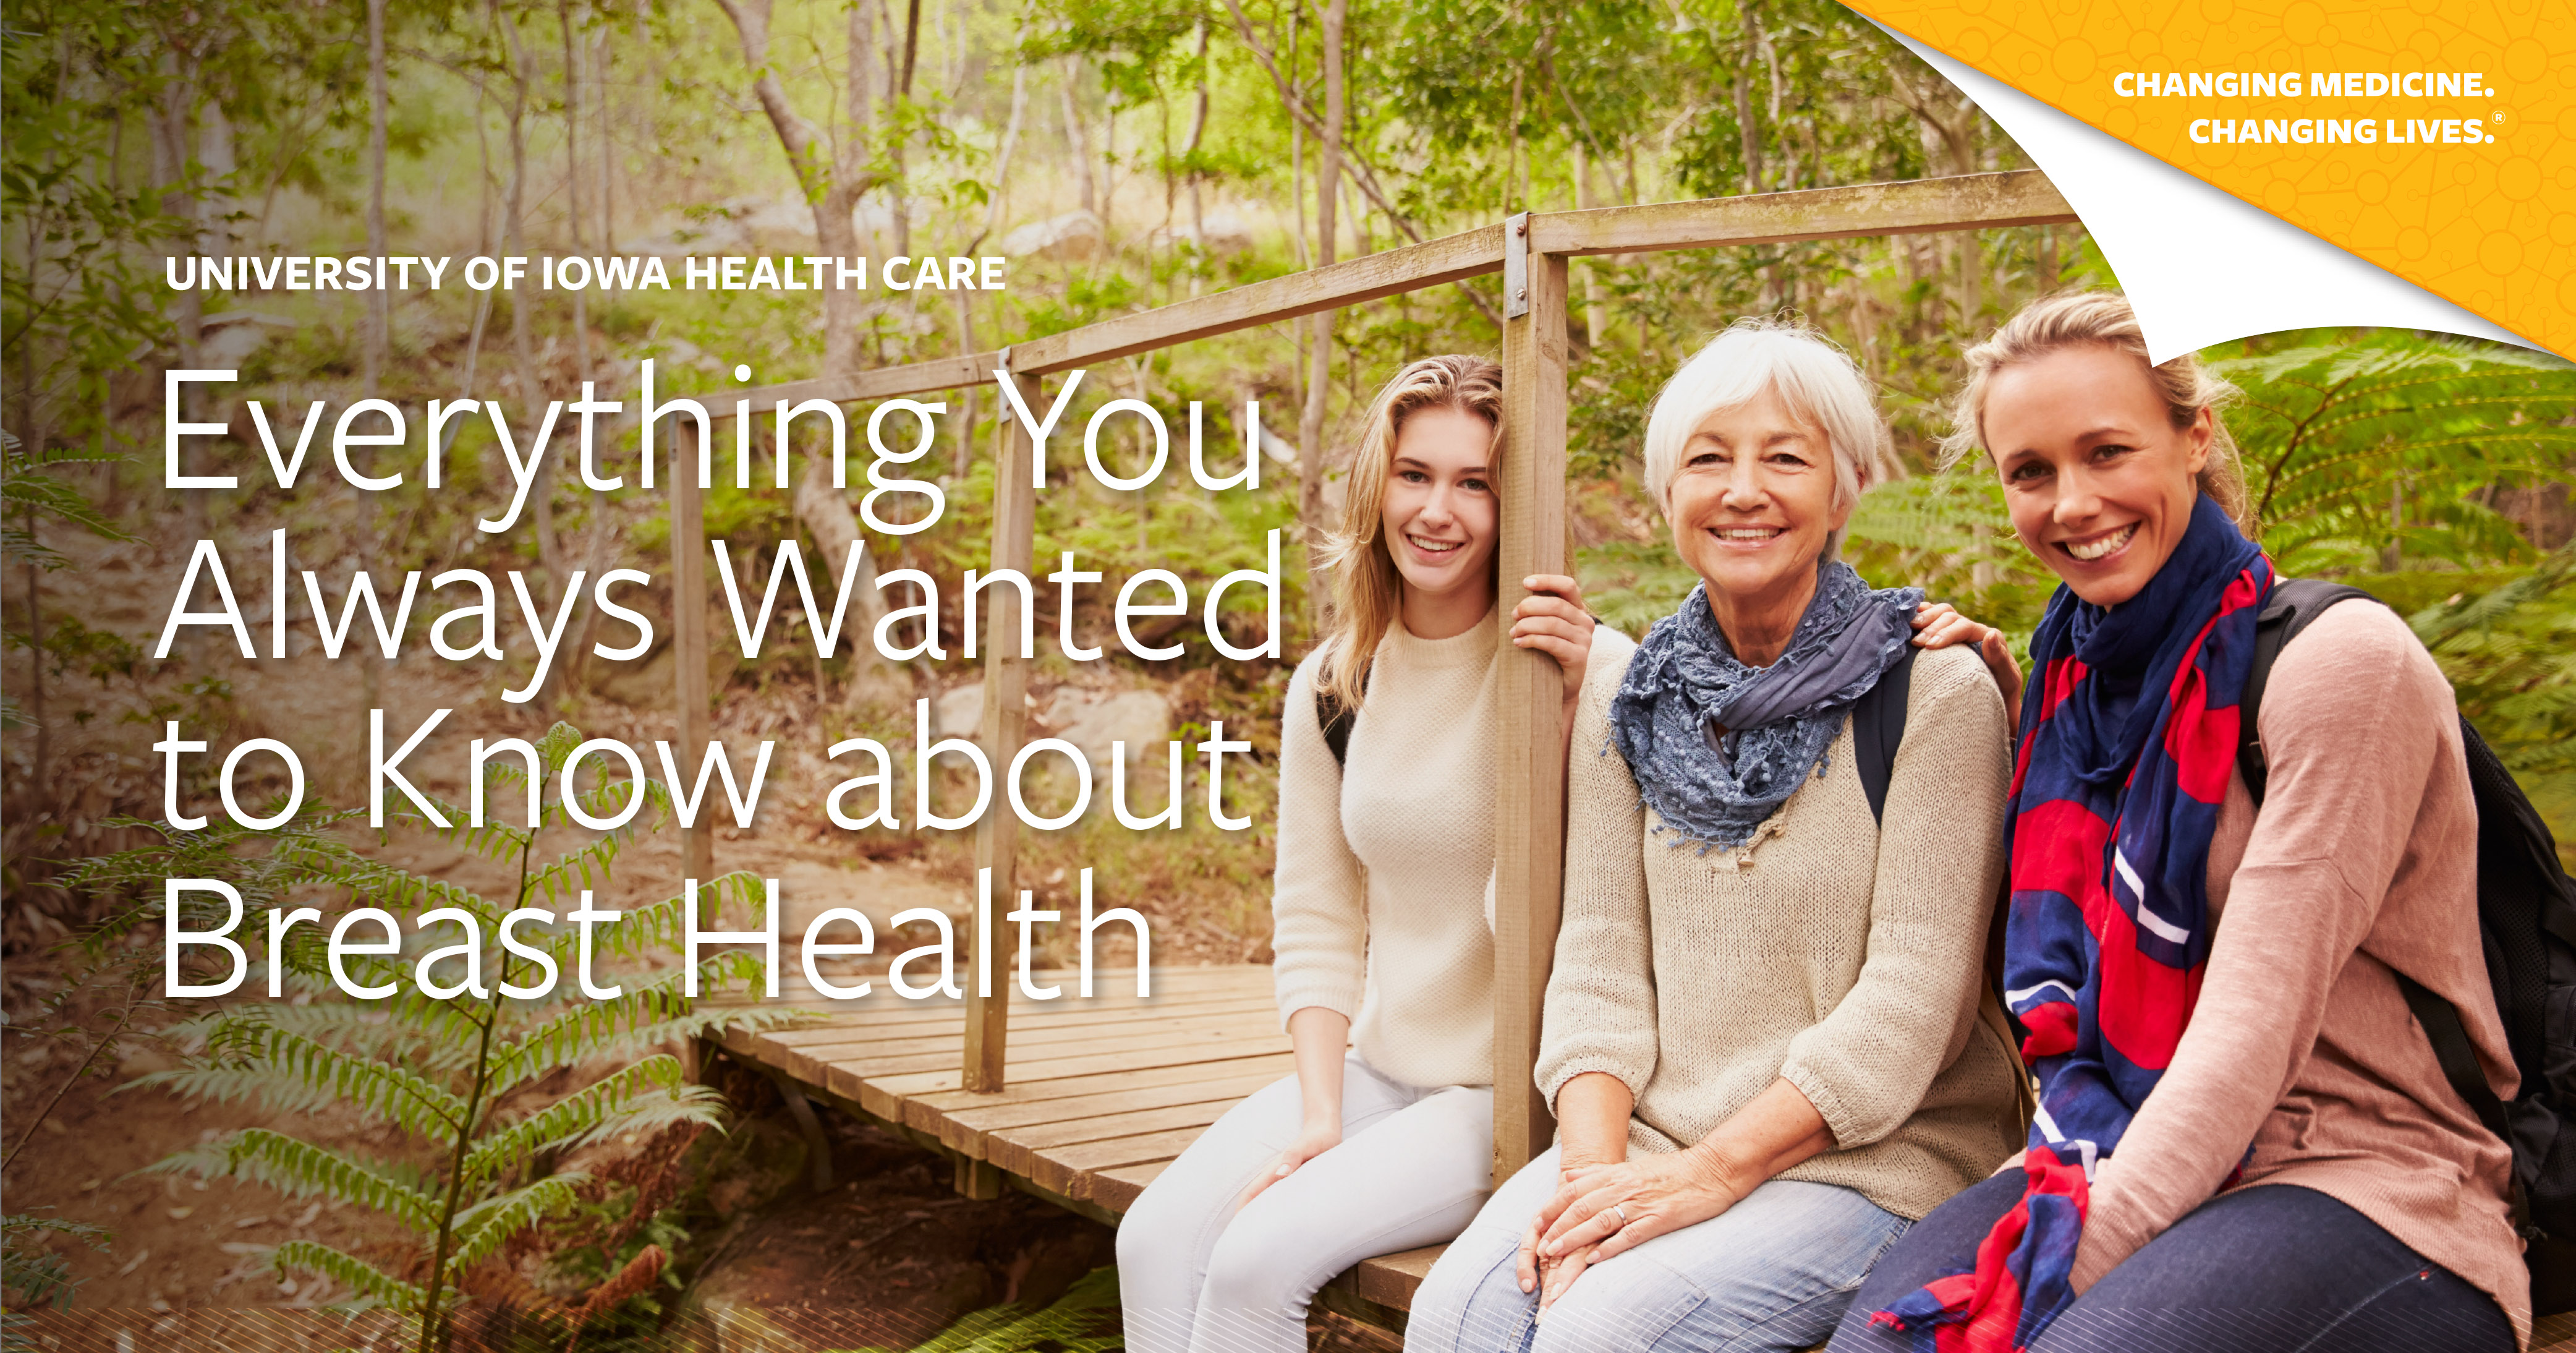 Community Health Seminar: Everything You Always Wanted to Know about Breast Health promotional image